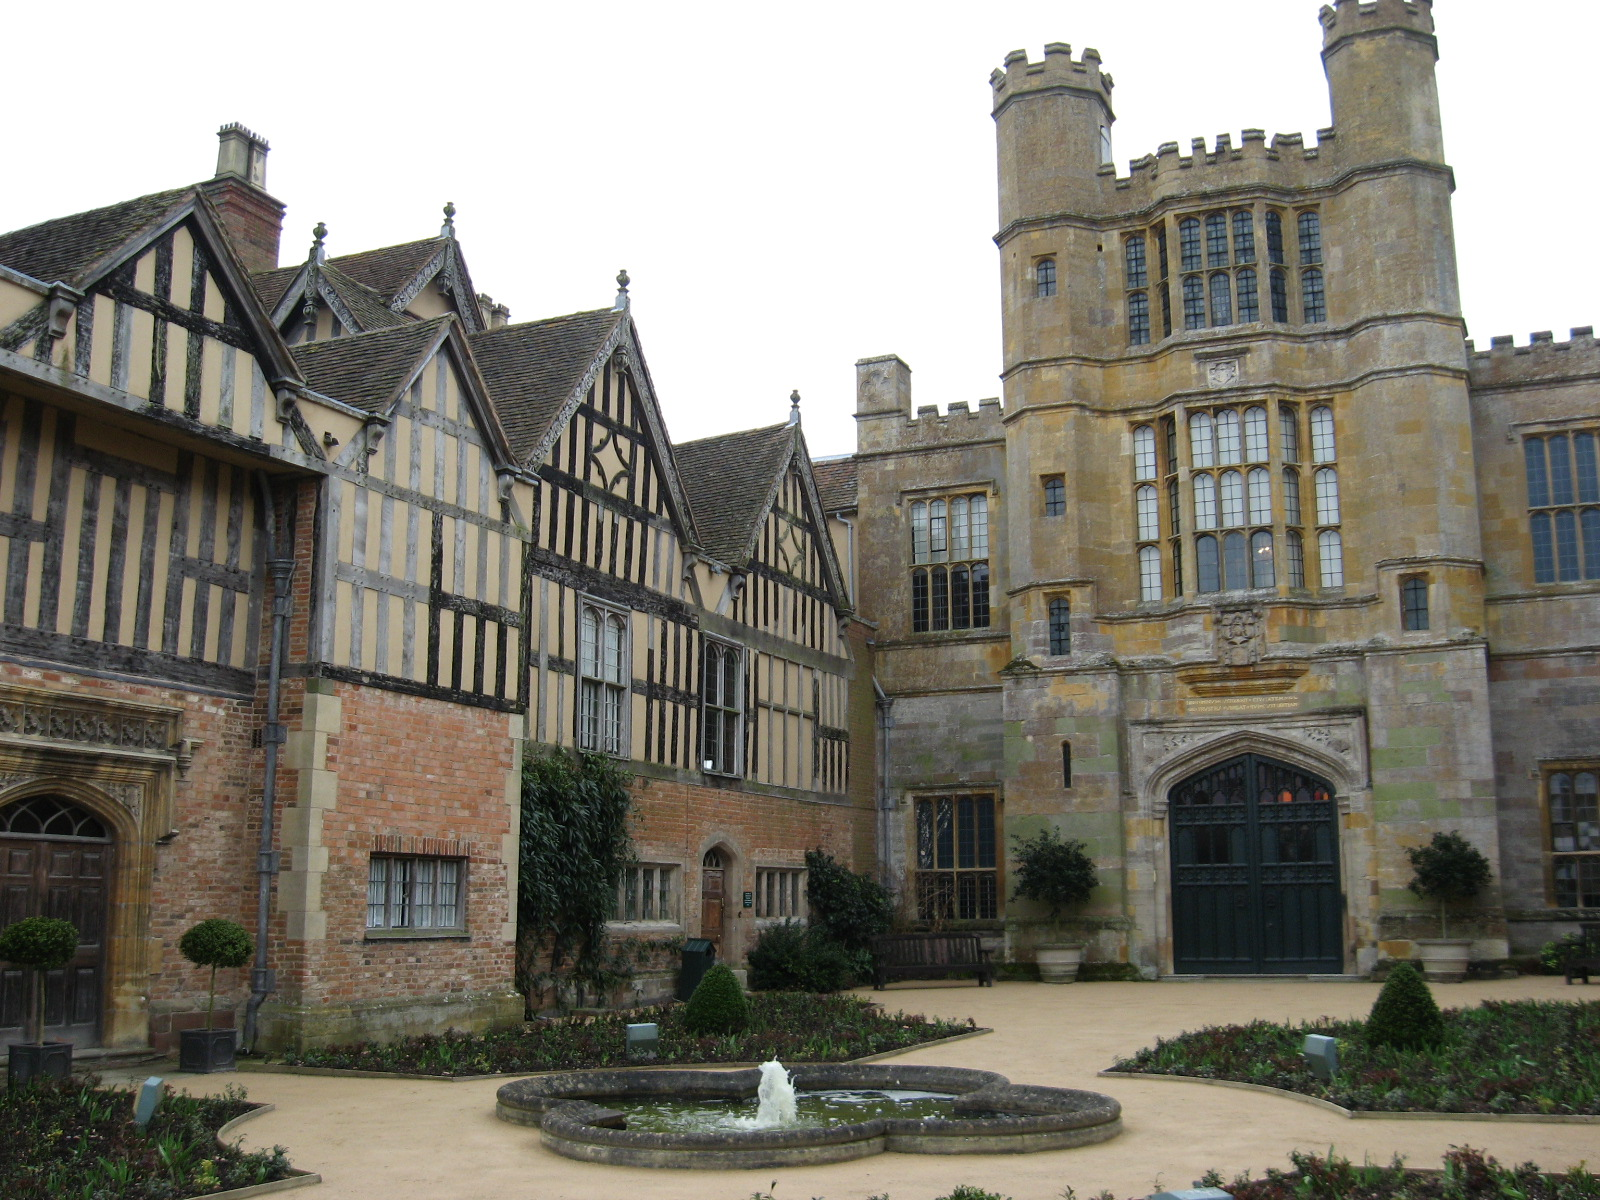 Coughton Court Wikimedia Commons